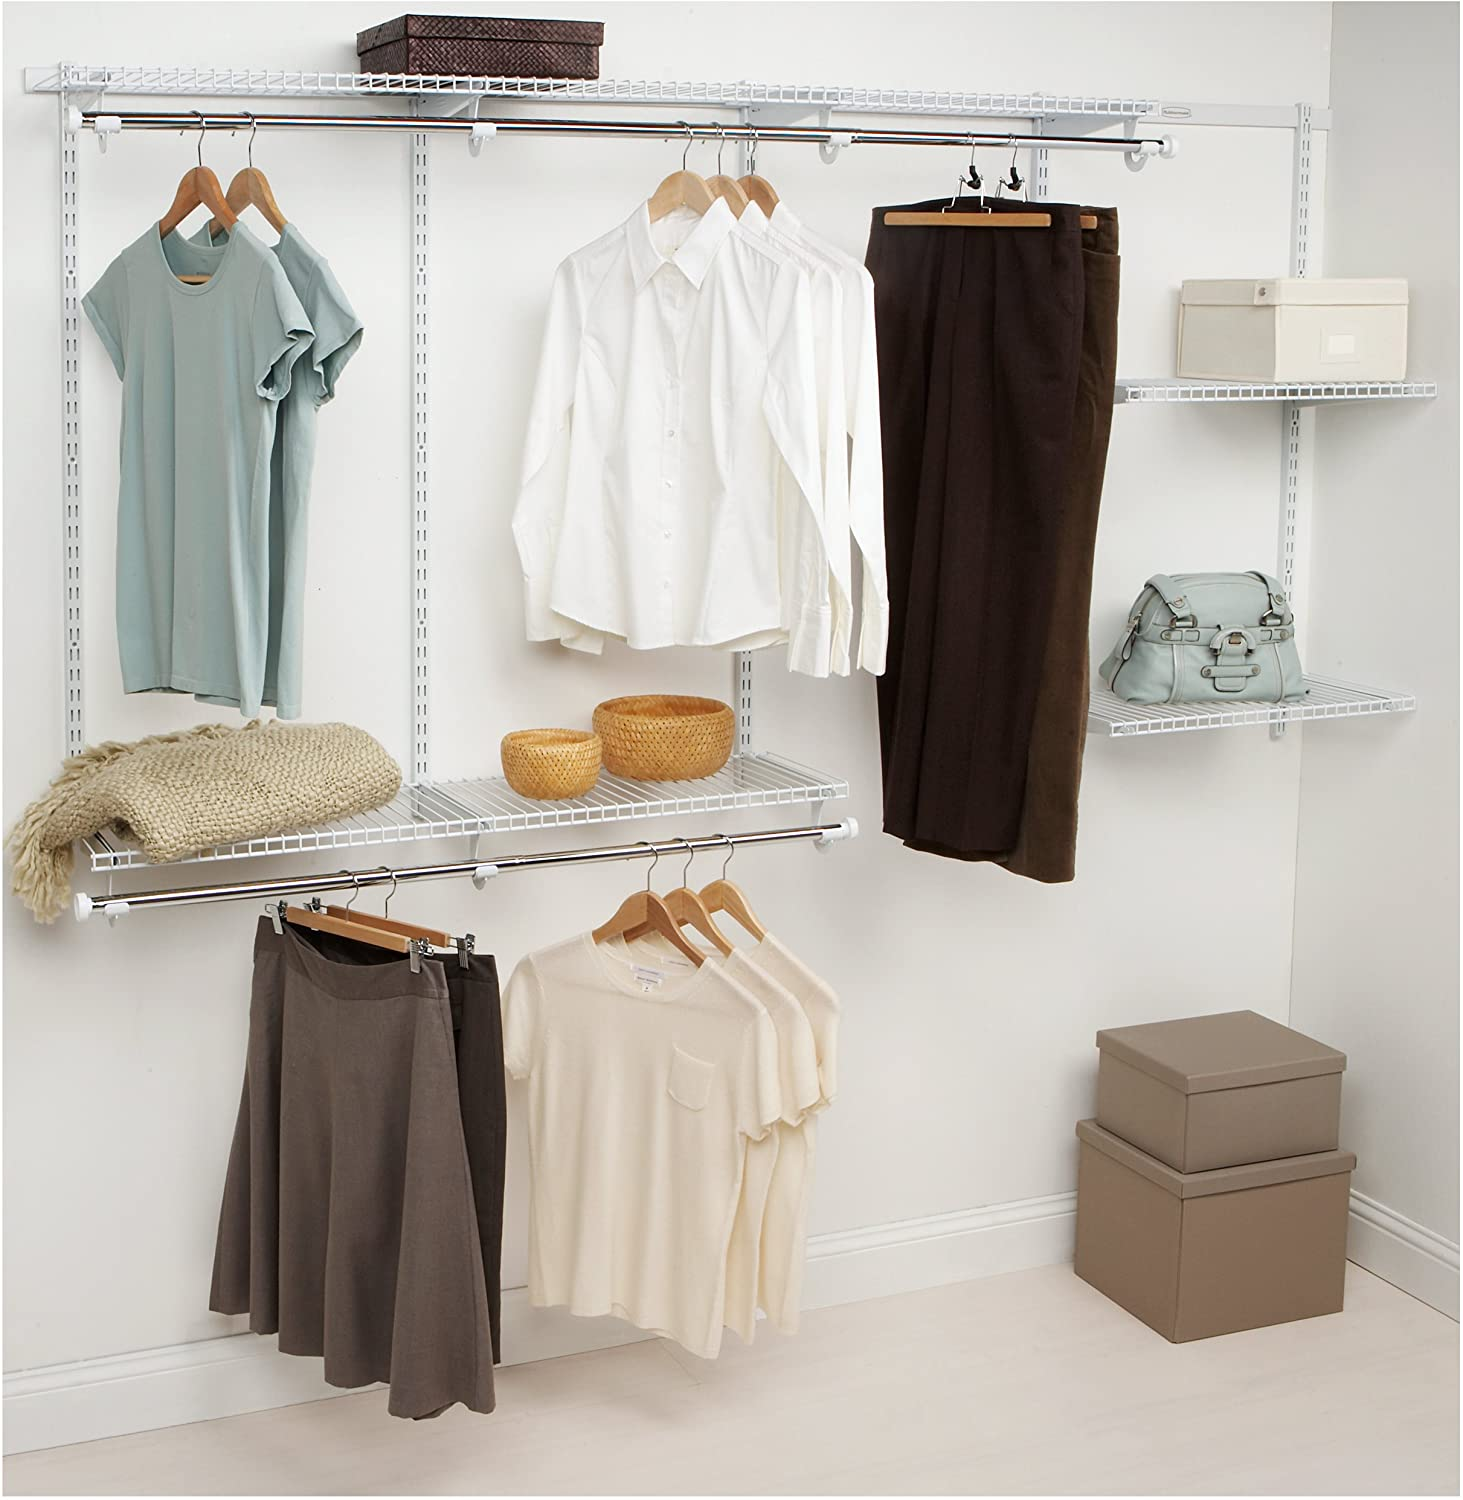 Closet System (Product Only, No Installation)